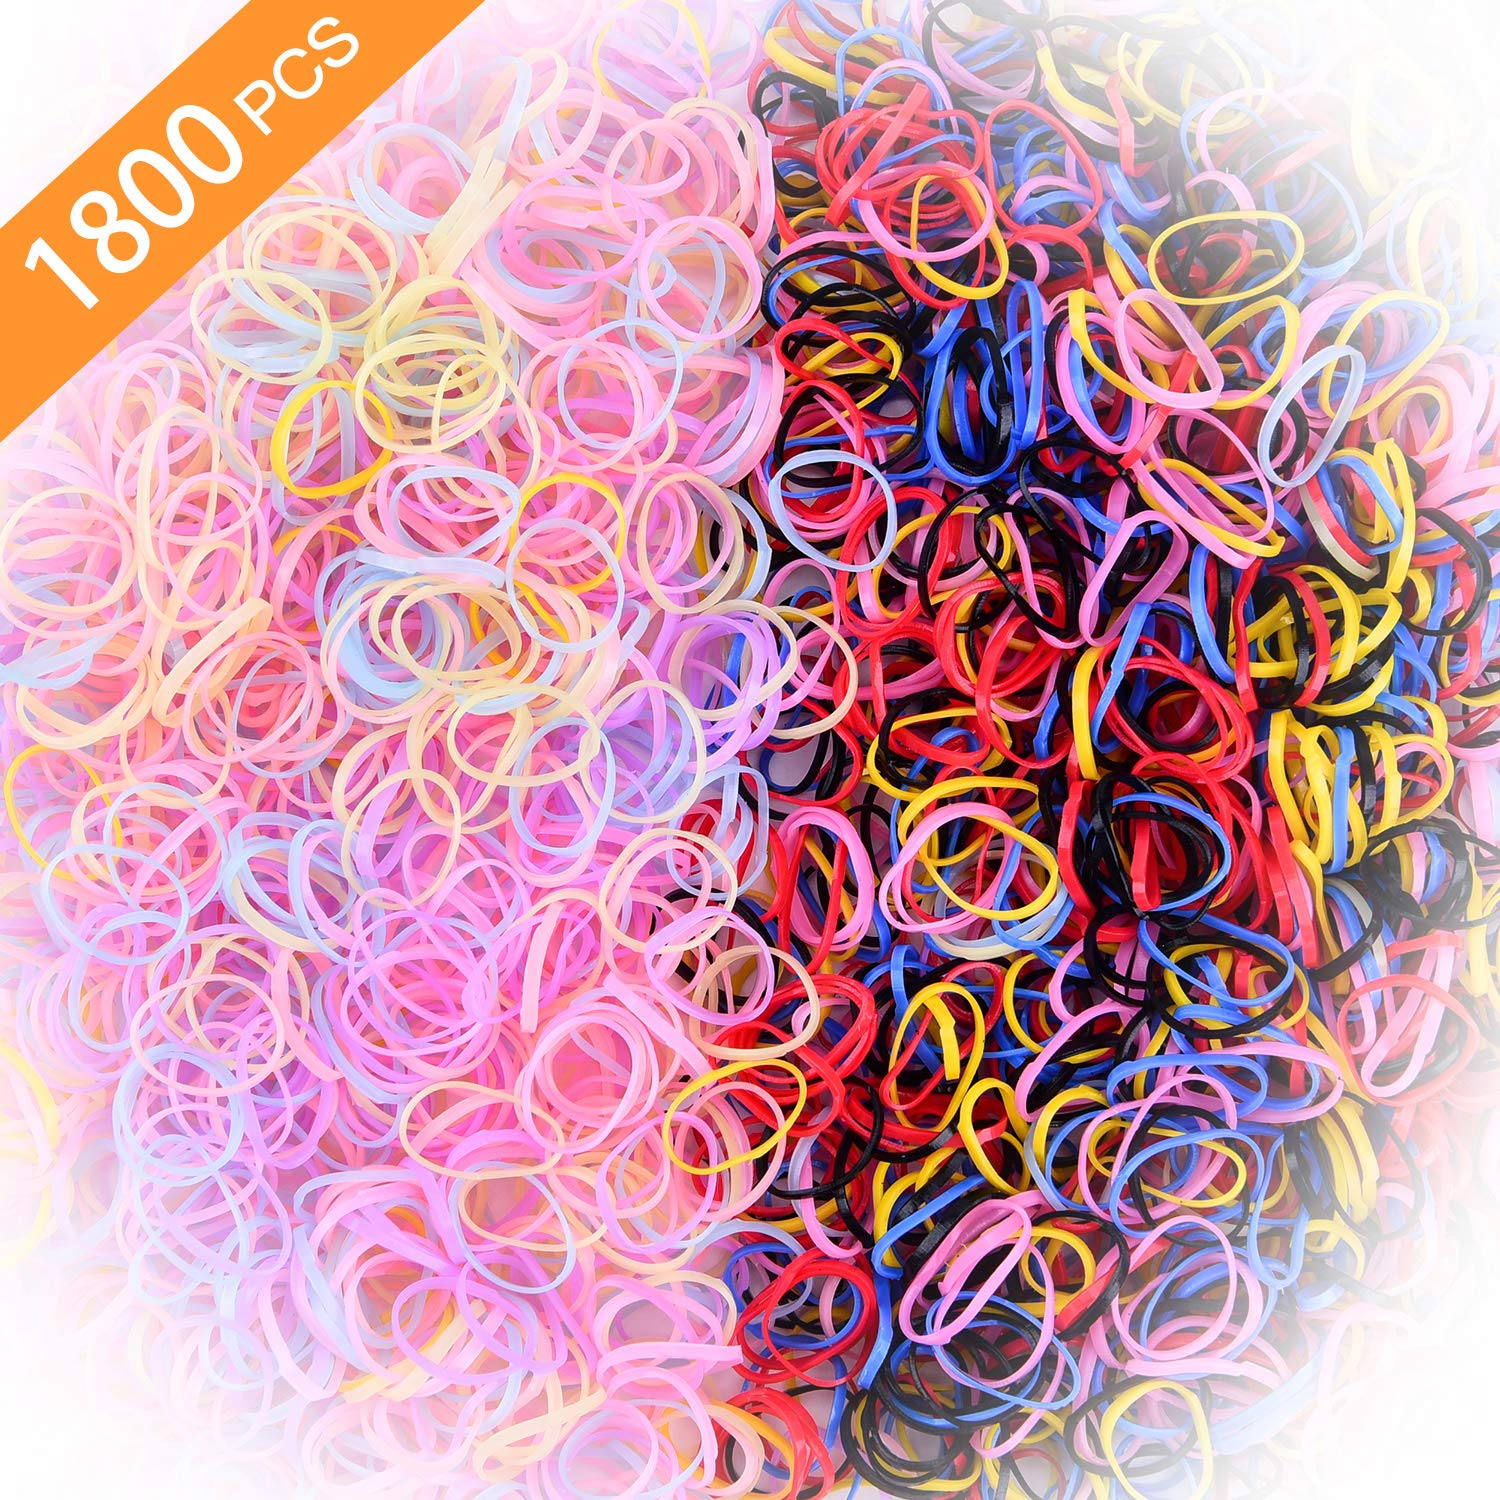 Toddlers Hair Ties for Kids Girls Baby Elastic Mini Hair Bands 1800pcs No Damage Hair Rubber Bands Multi Candy&Deep Color Hair Holder